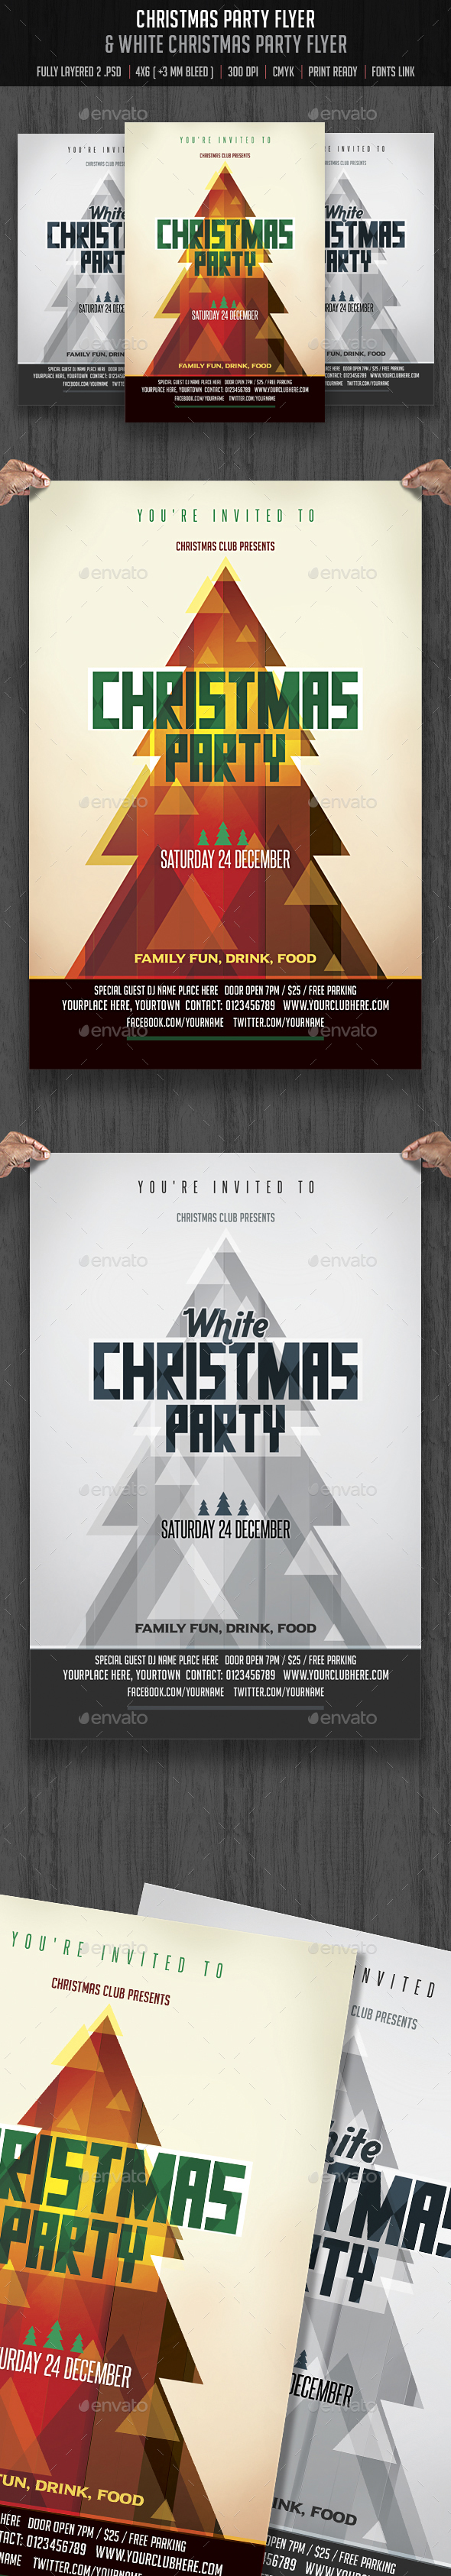 Christmas u0026 White Christmas Party Flyer